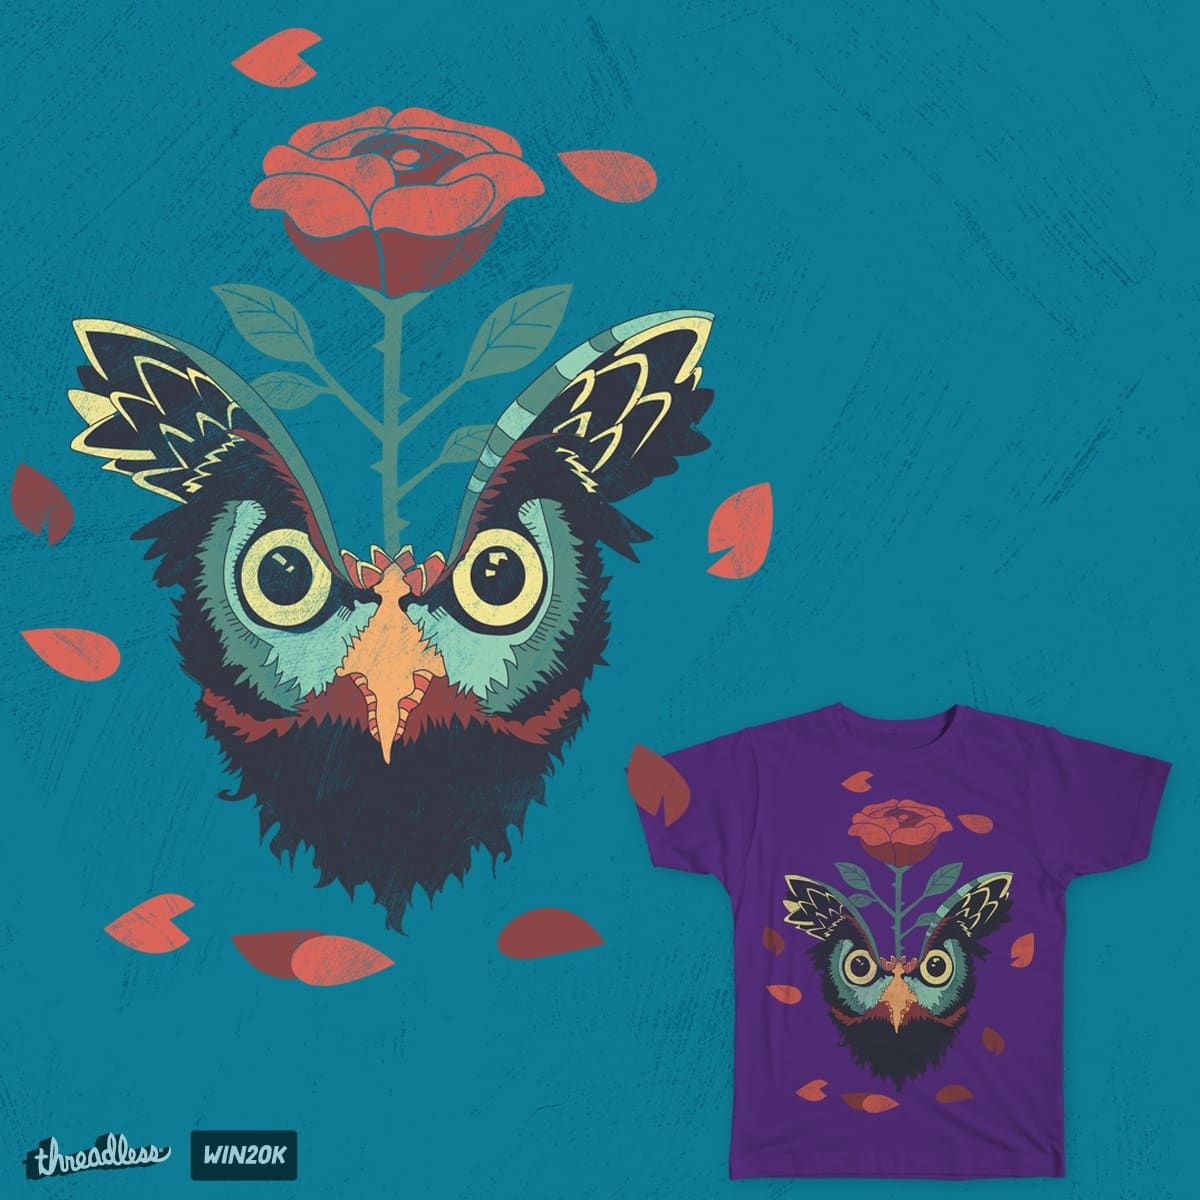 Wise Rose by MattPye on Threadless